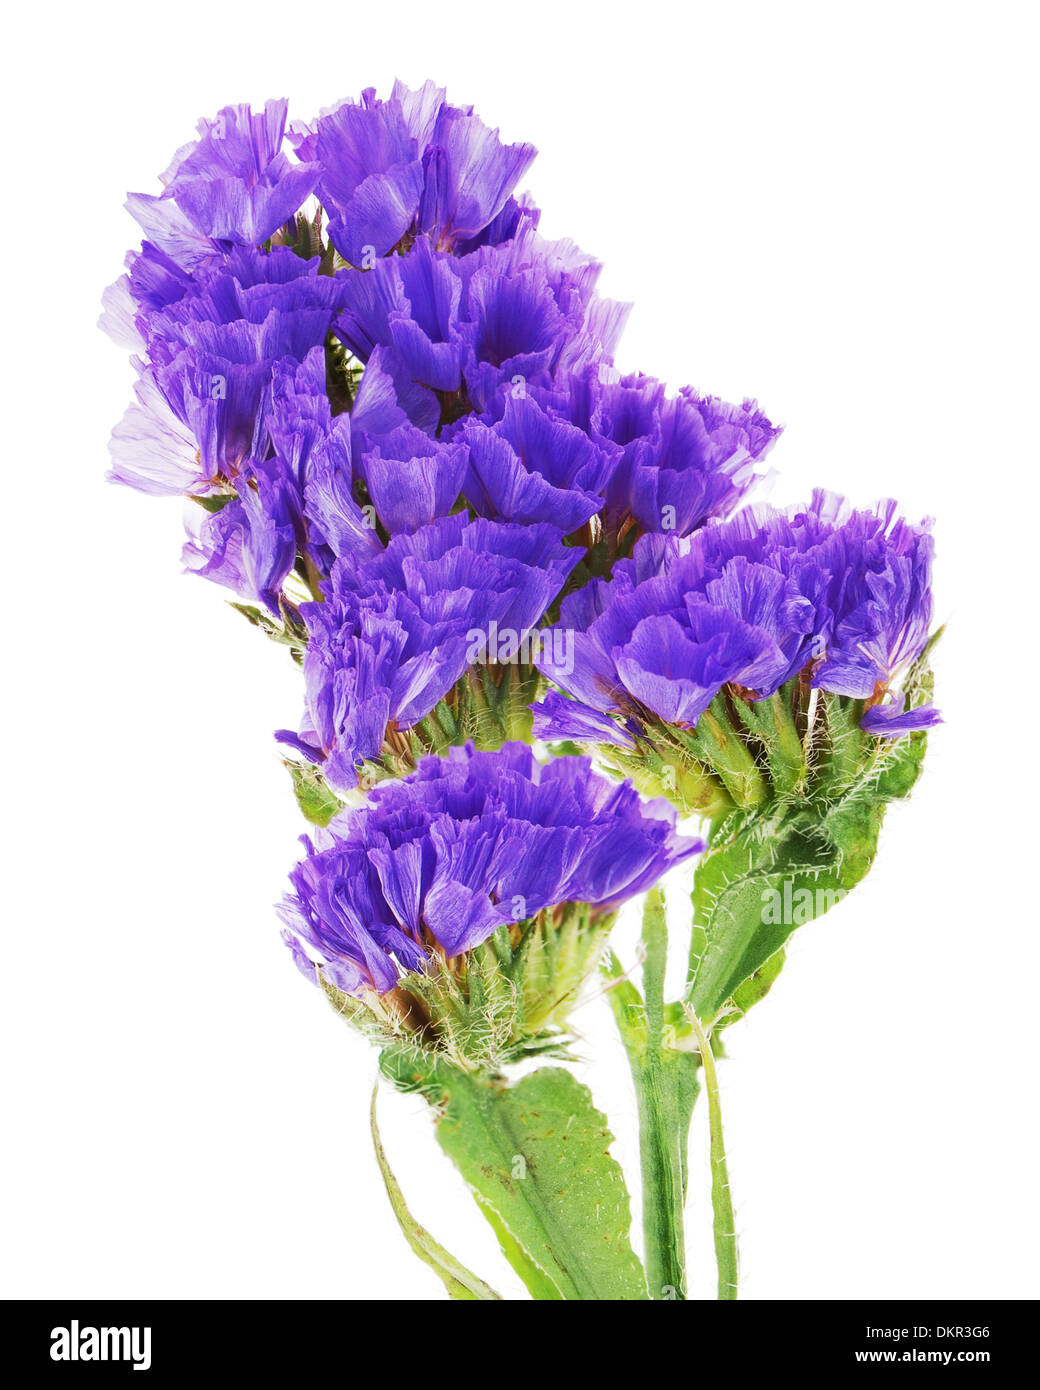 macro of purple statice flowers isolated on white background